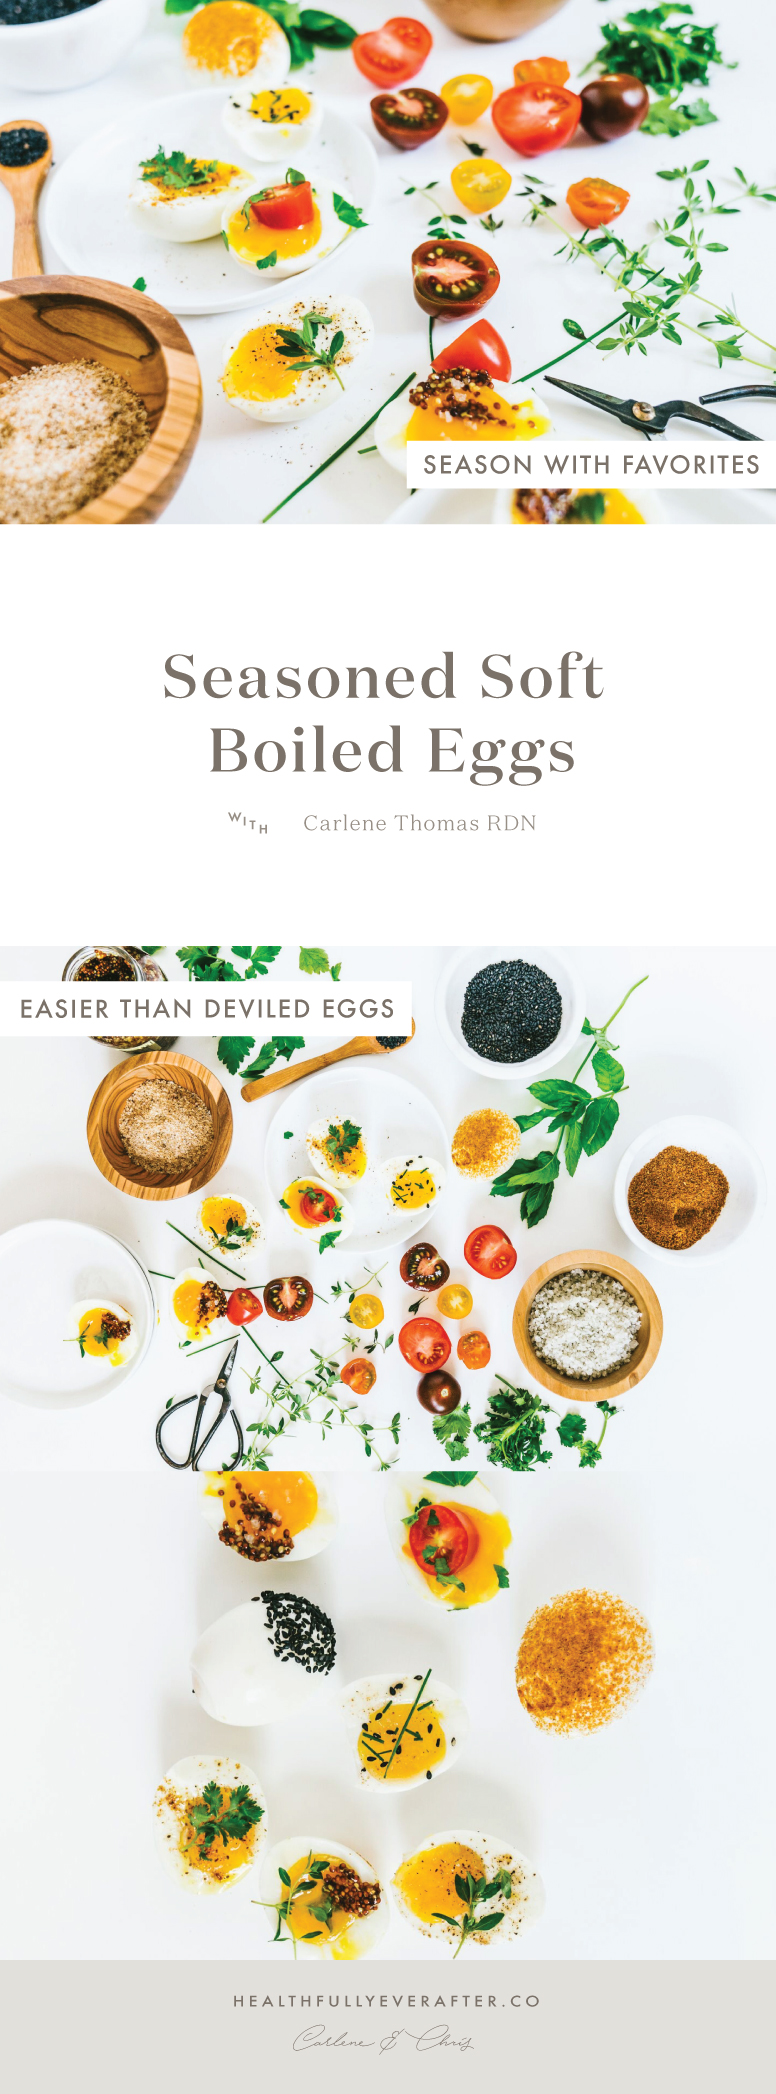 soft boiled dipped eggs with seasoning